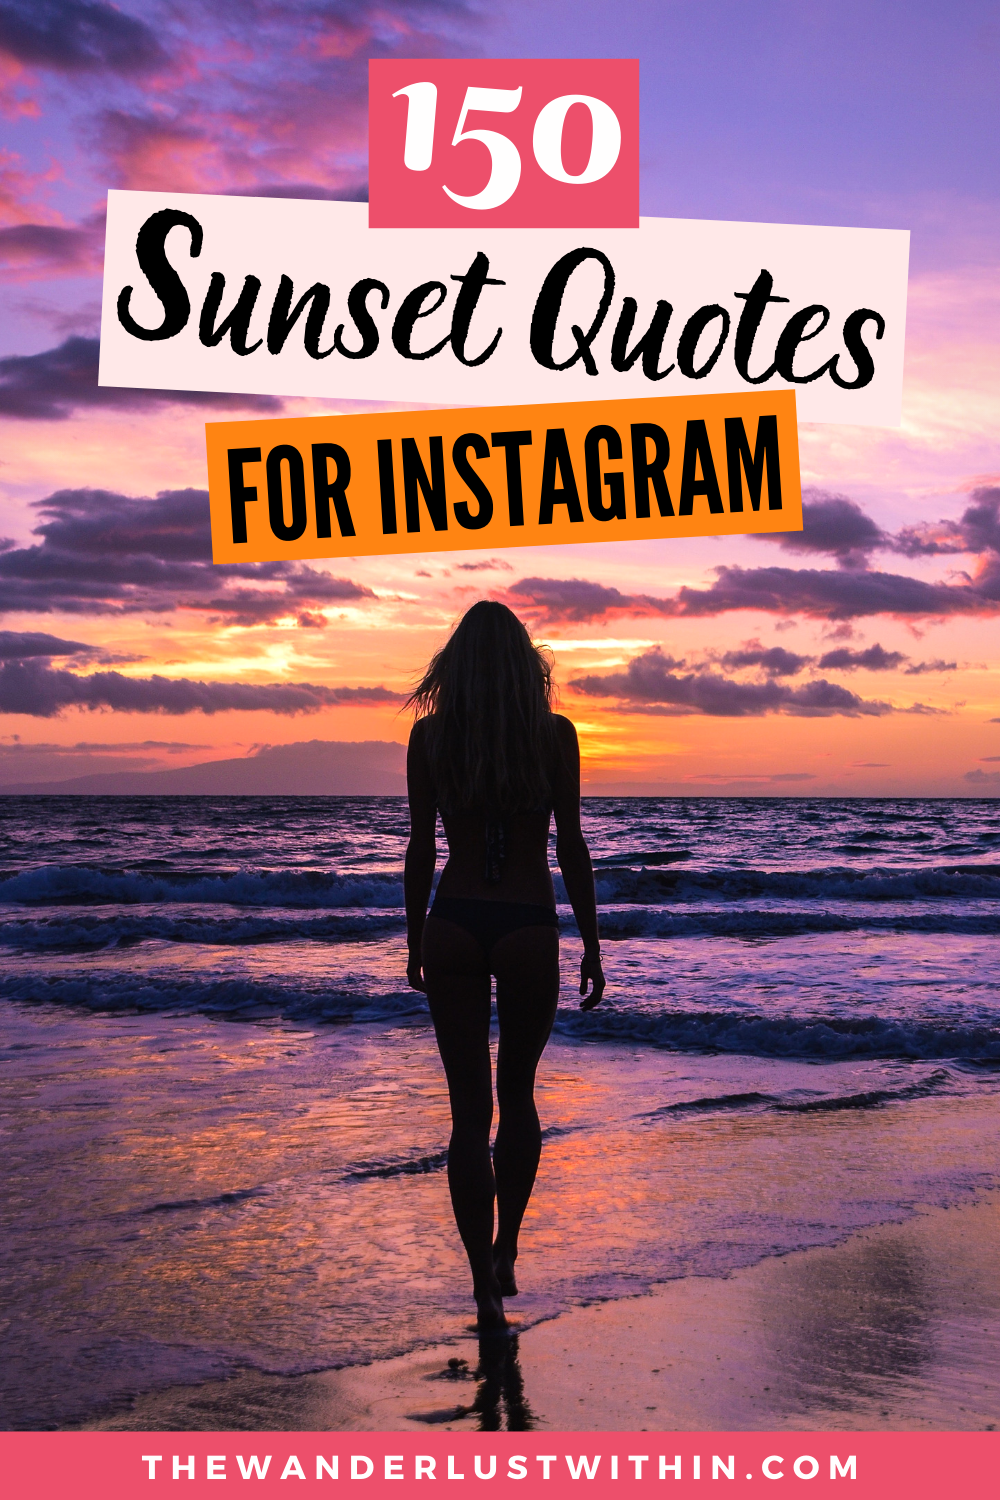 150 Perfect Sunset Captions For Instagram 2020 The Wanderlust Within In 2020 Sunset Captions For Instagram Sunset Captions Sunset Quotes Instagram